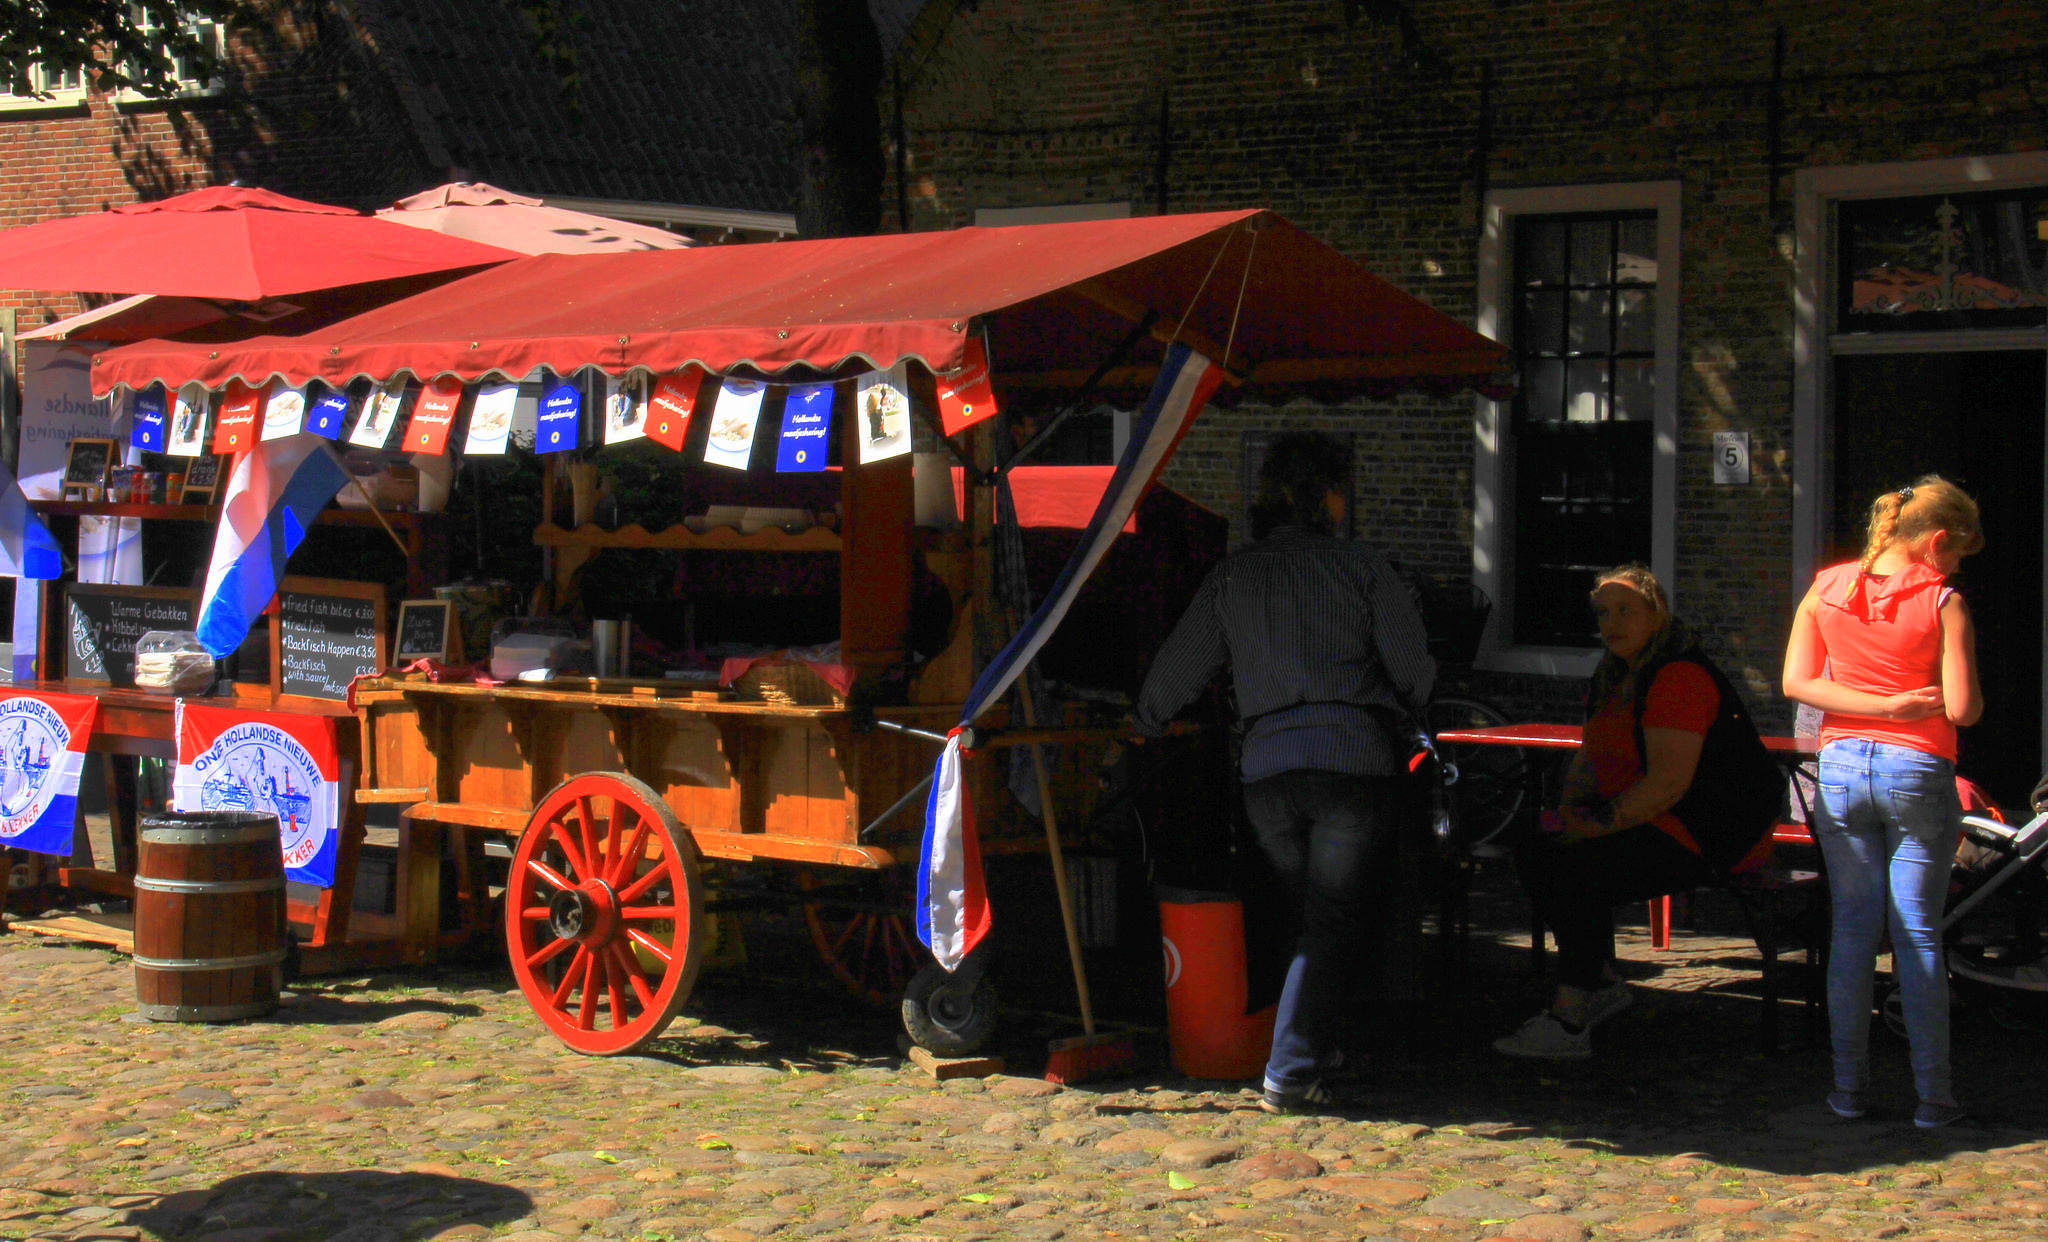 The fort bourtange holds many festivals and flea markets